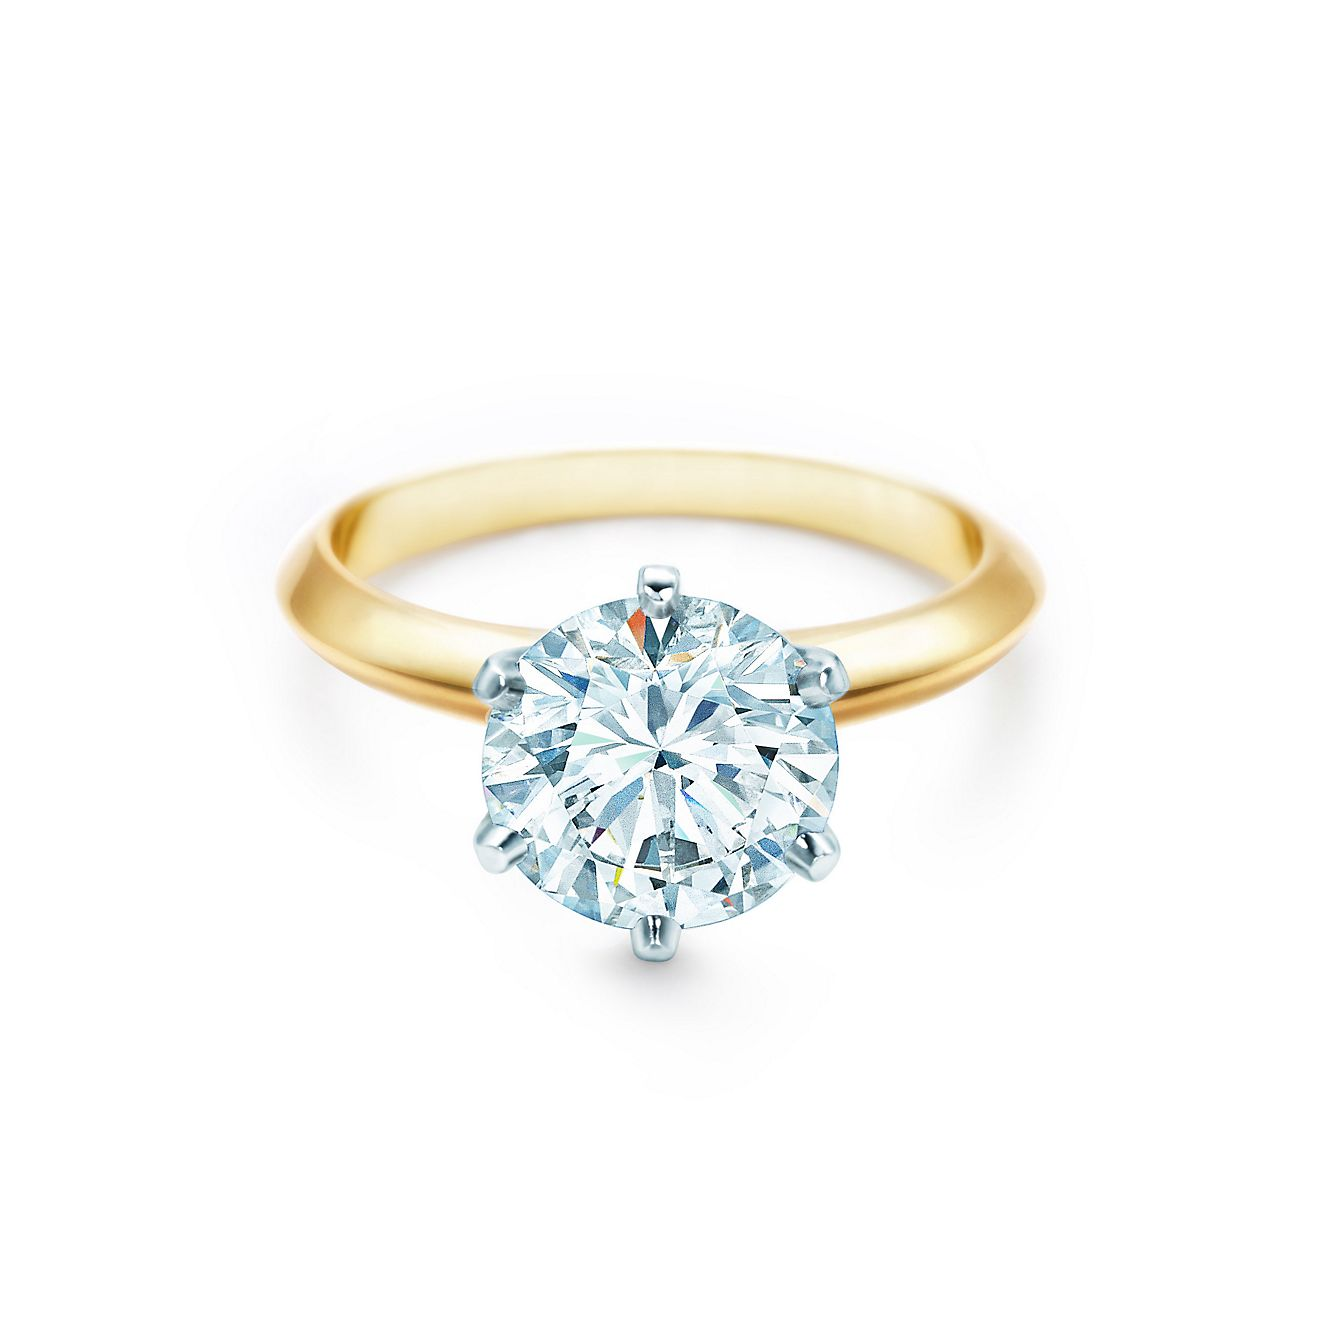 THE TIFFANY® SETTING 18K YELLOW GOLD